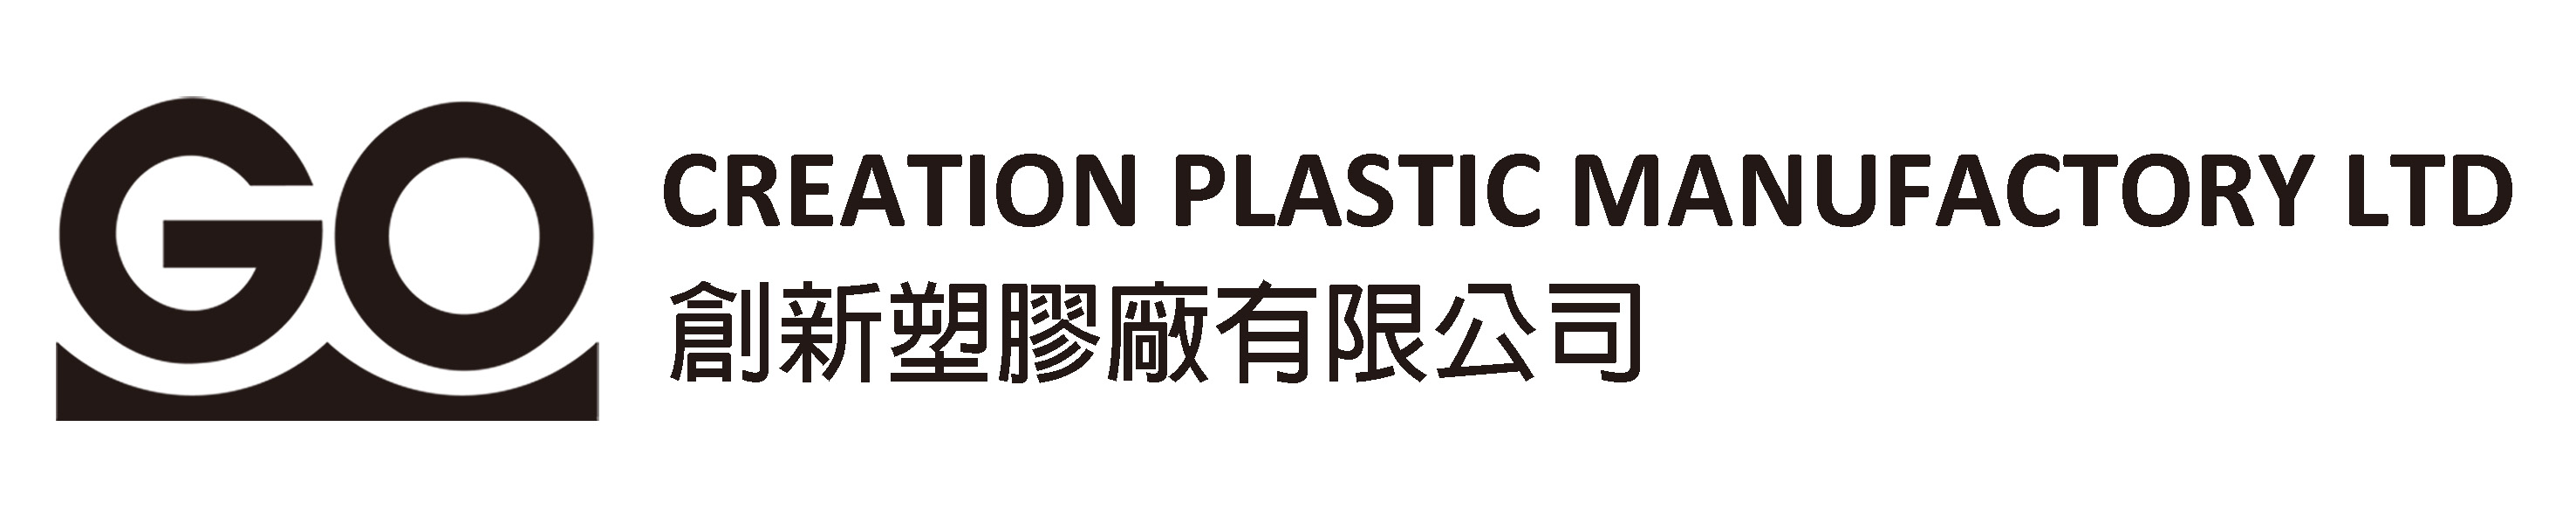 Creation Plastic